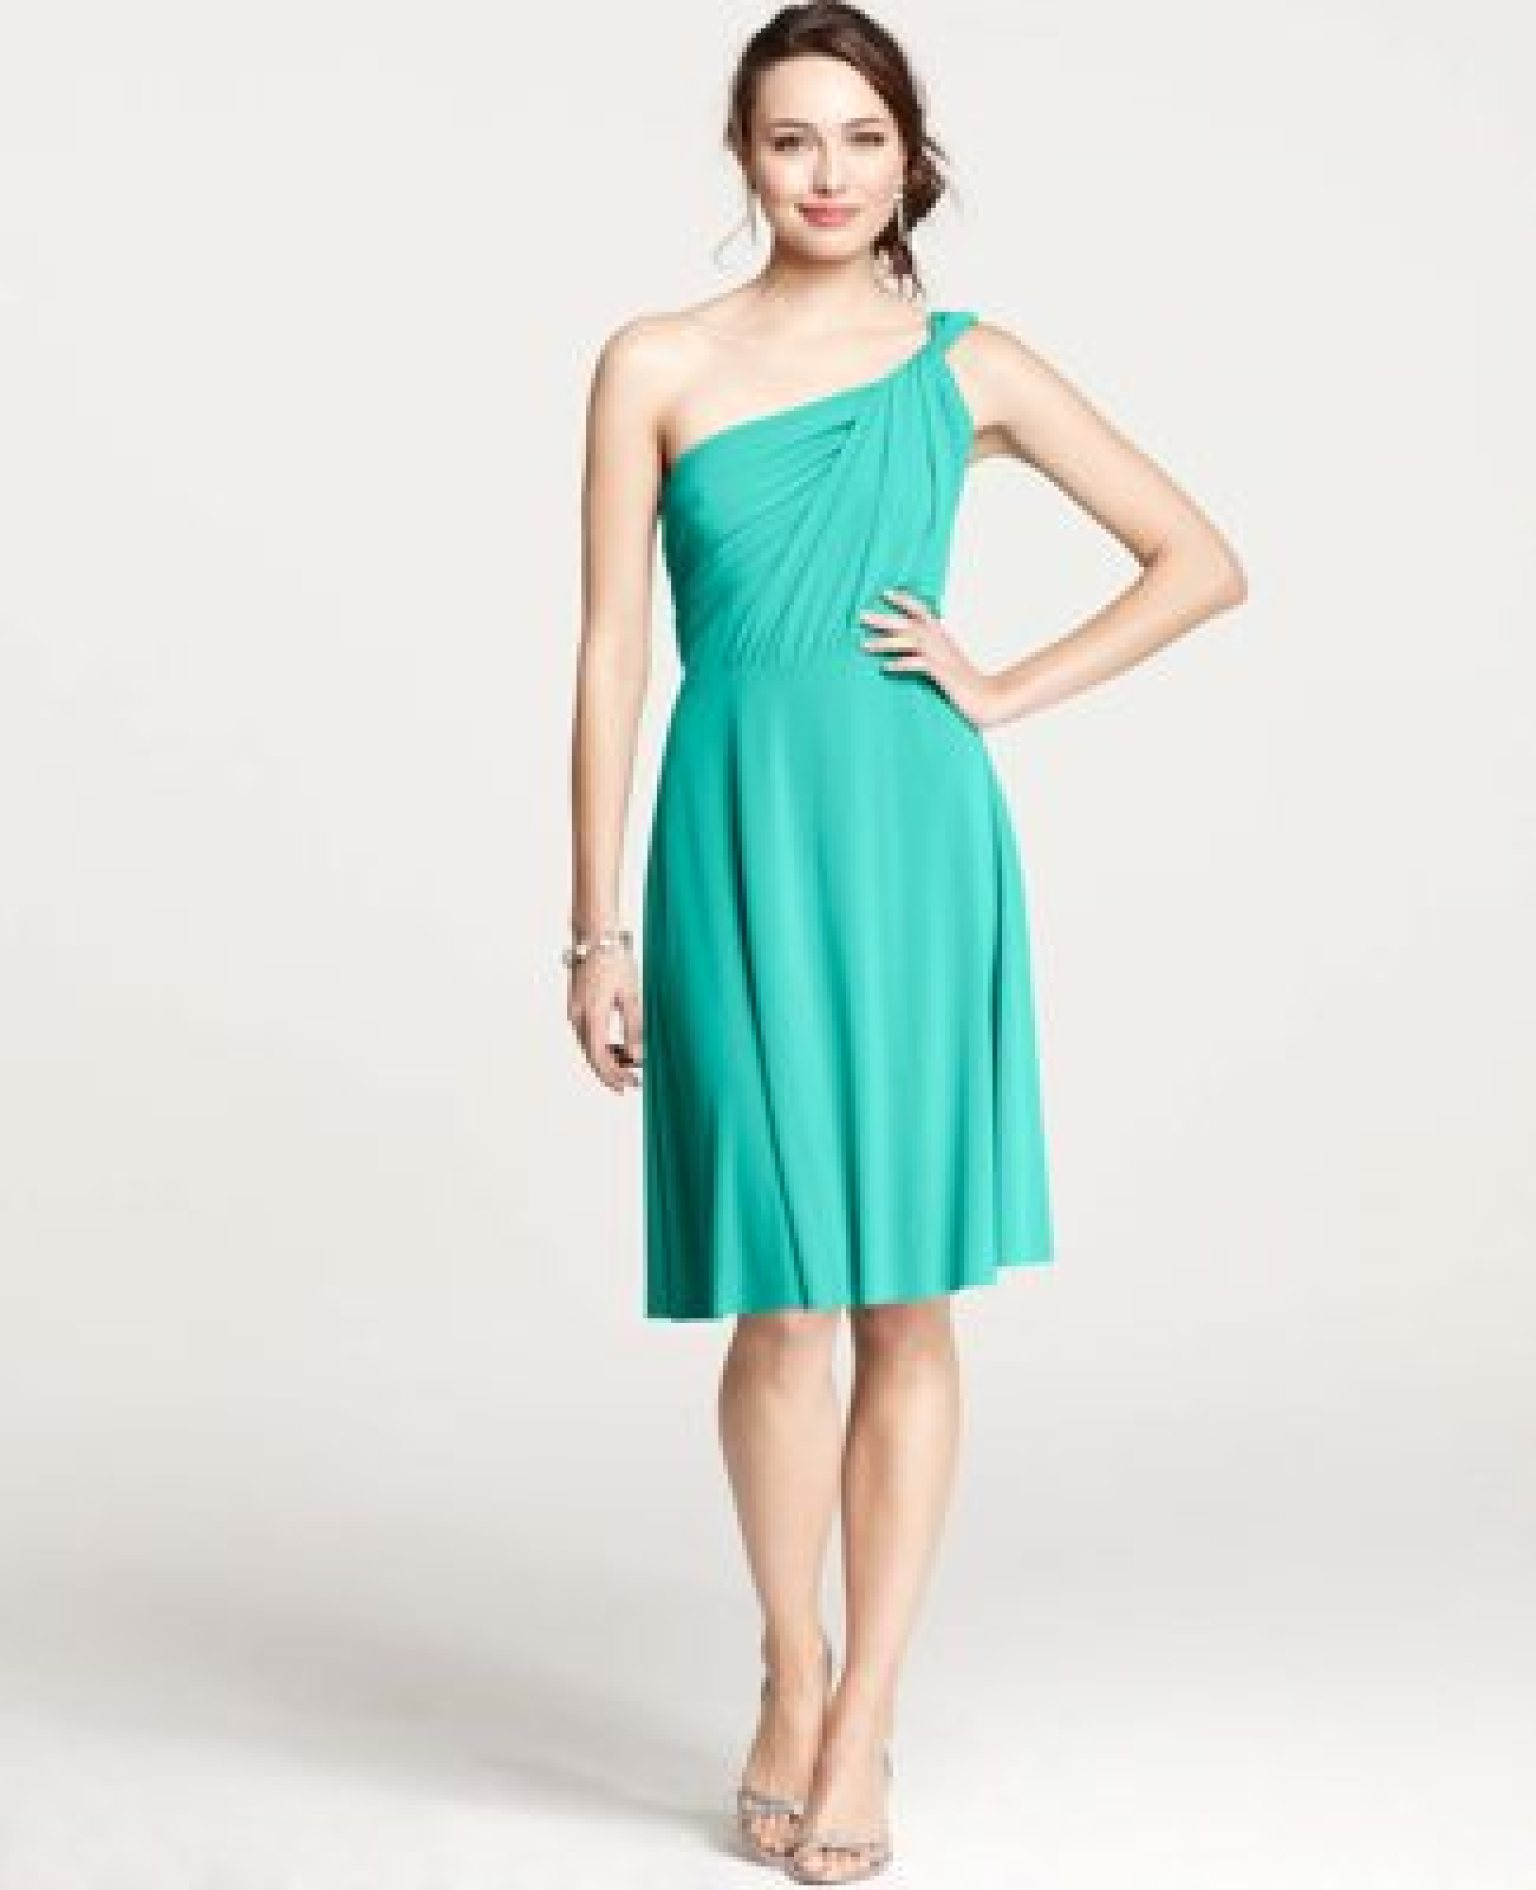 wedding guest dresses for summer affairs photos huffpost With wedding guests dresses